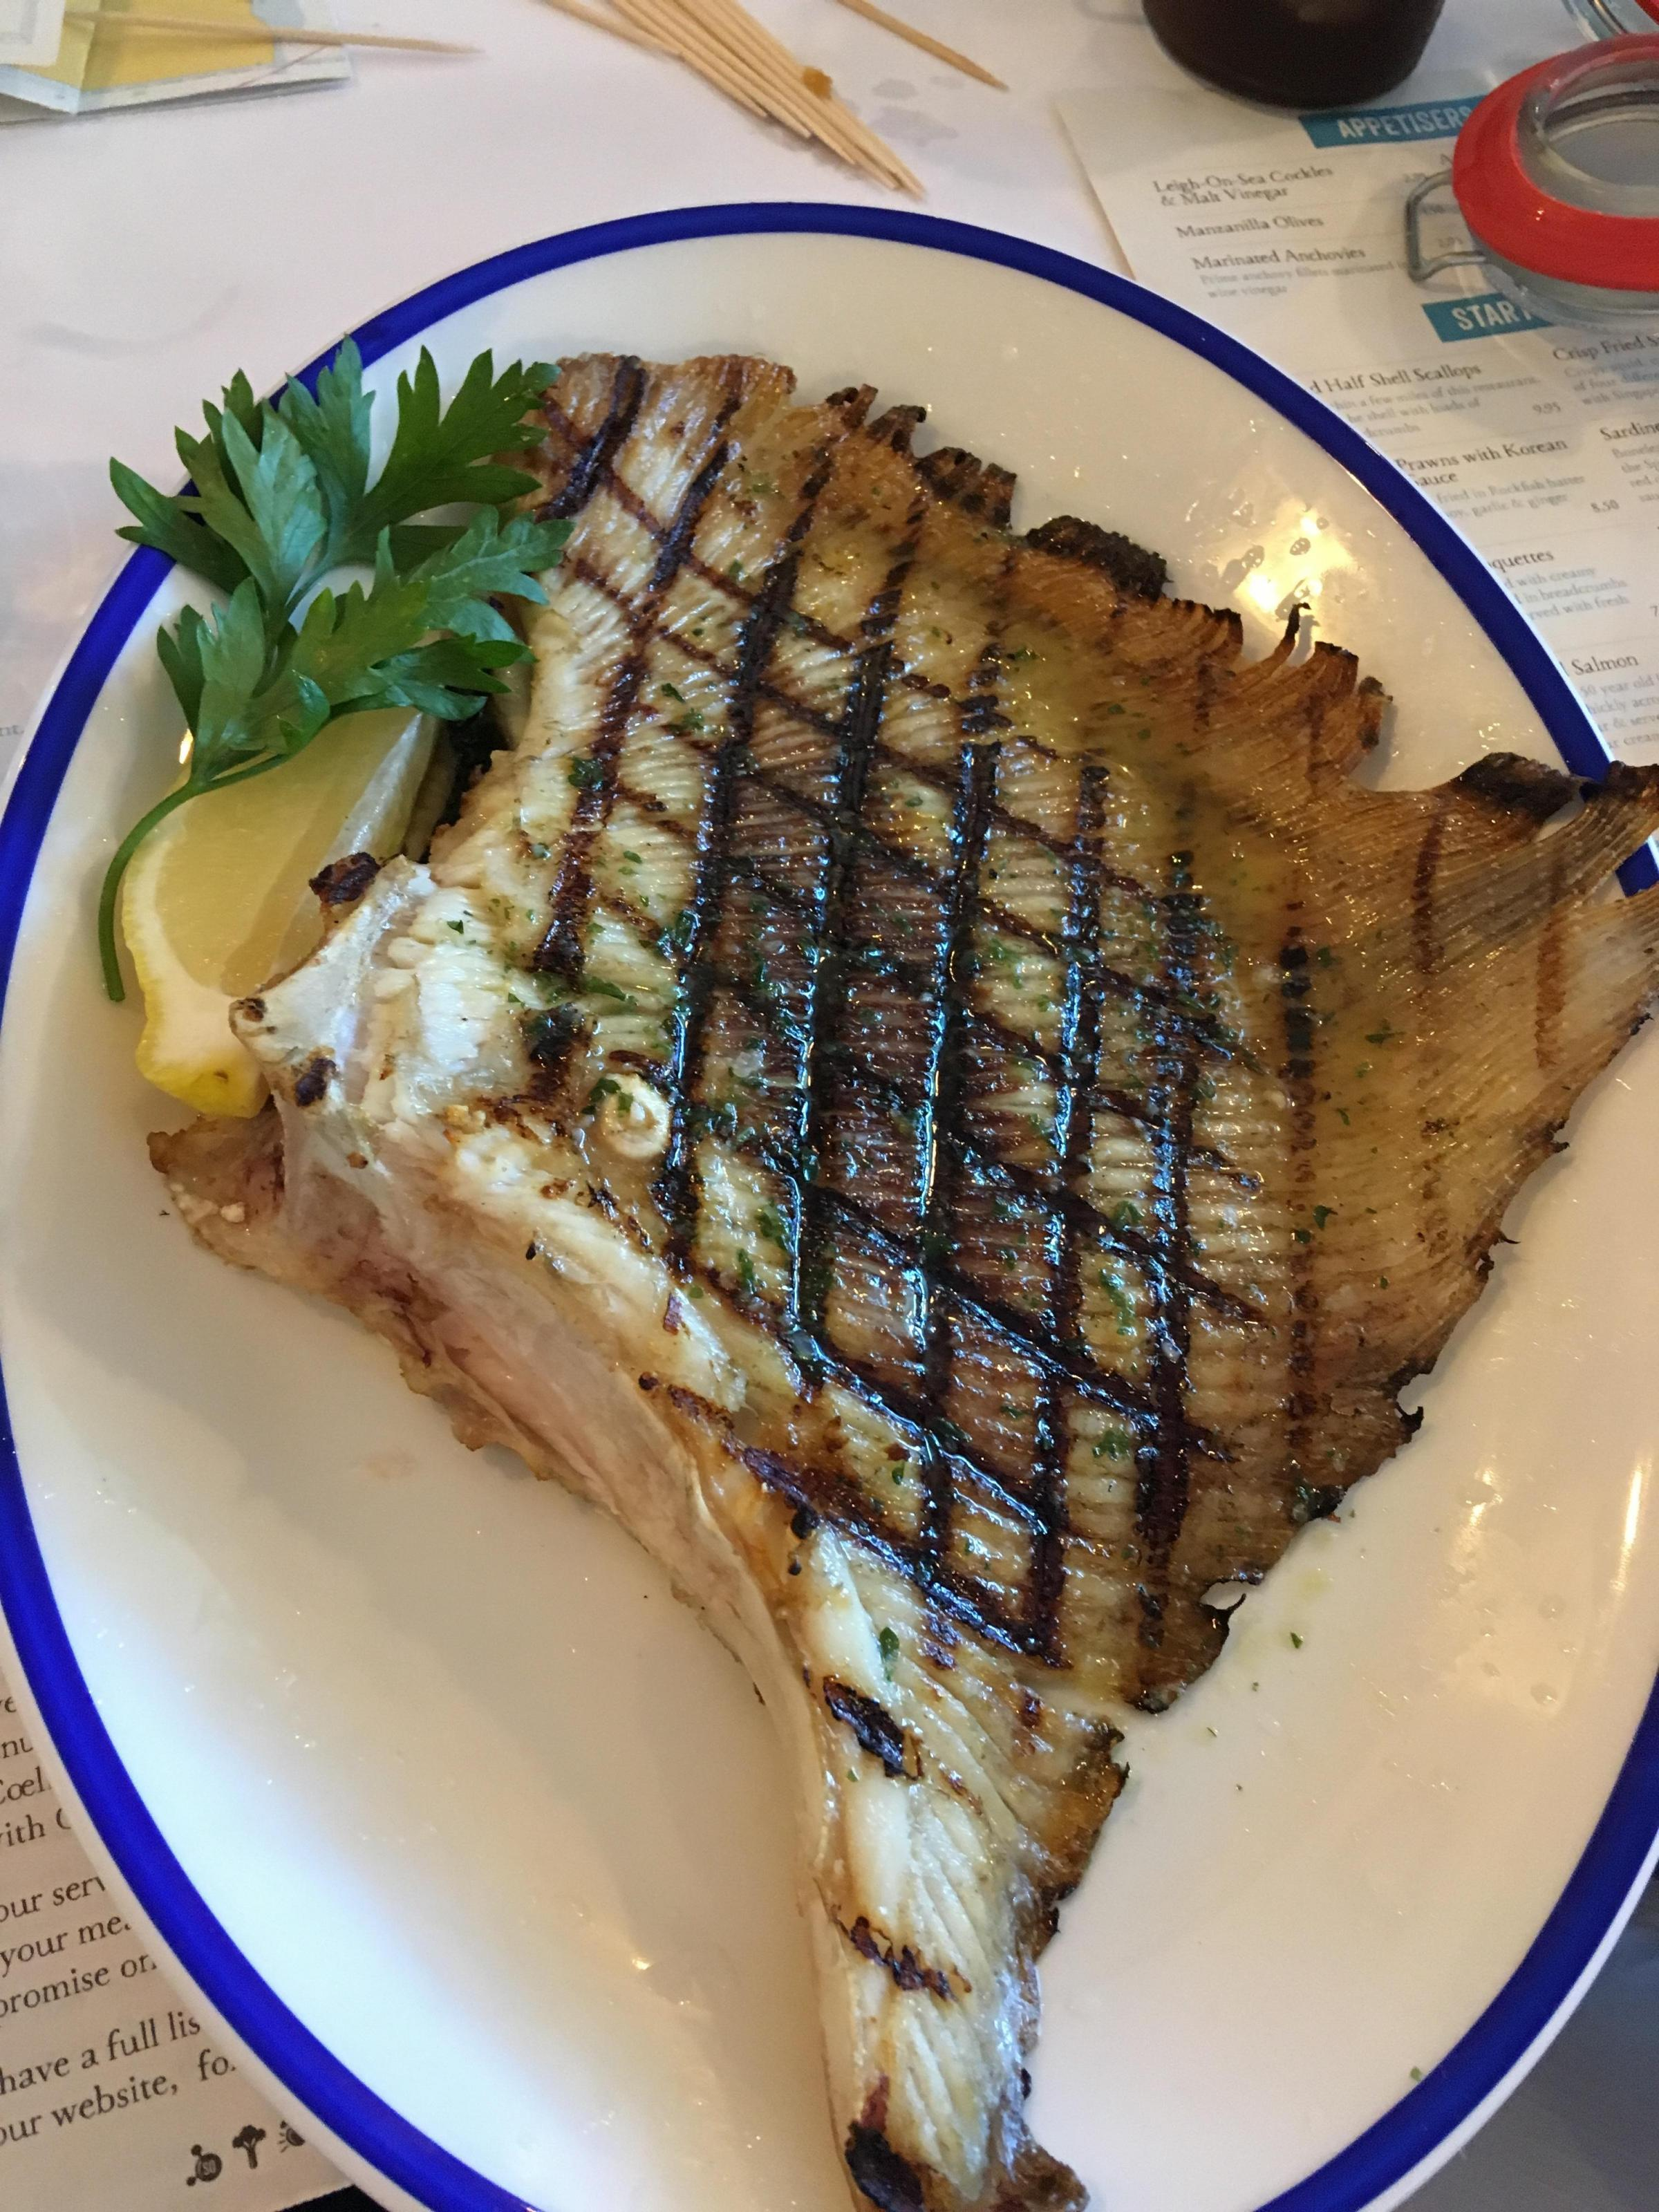 REVIEW: As Rockfish Weymouth opens its doors - what's the food like?